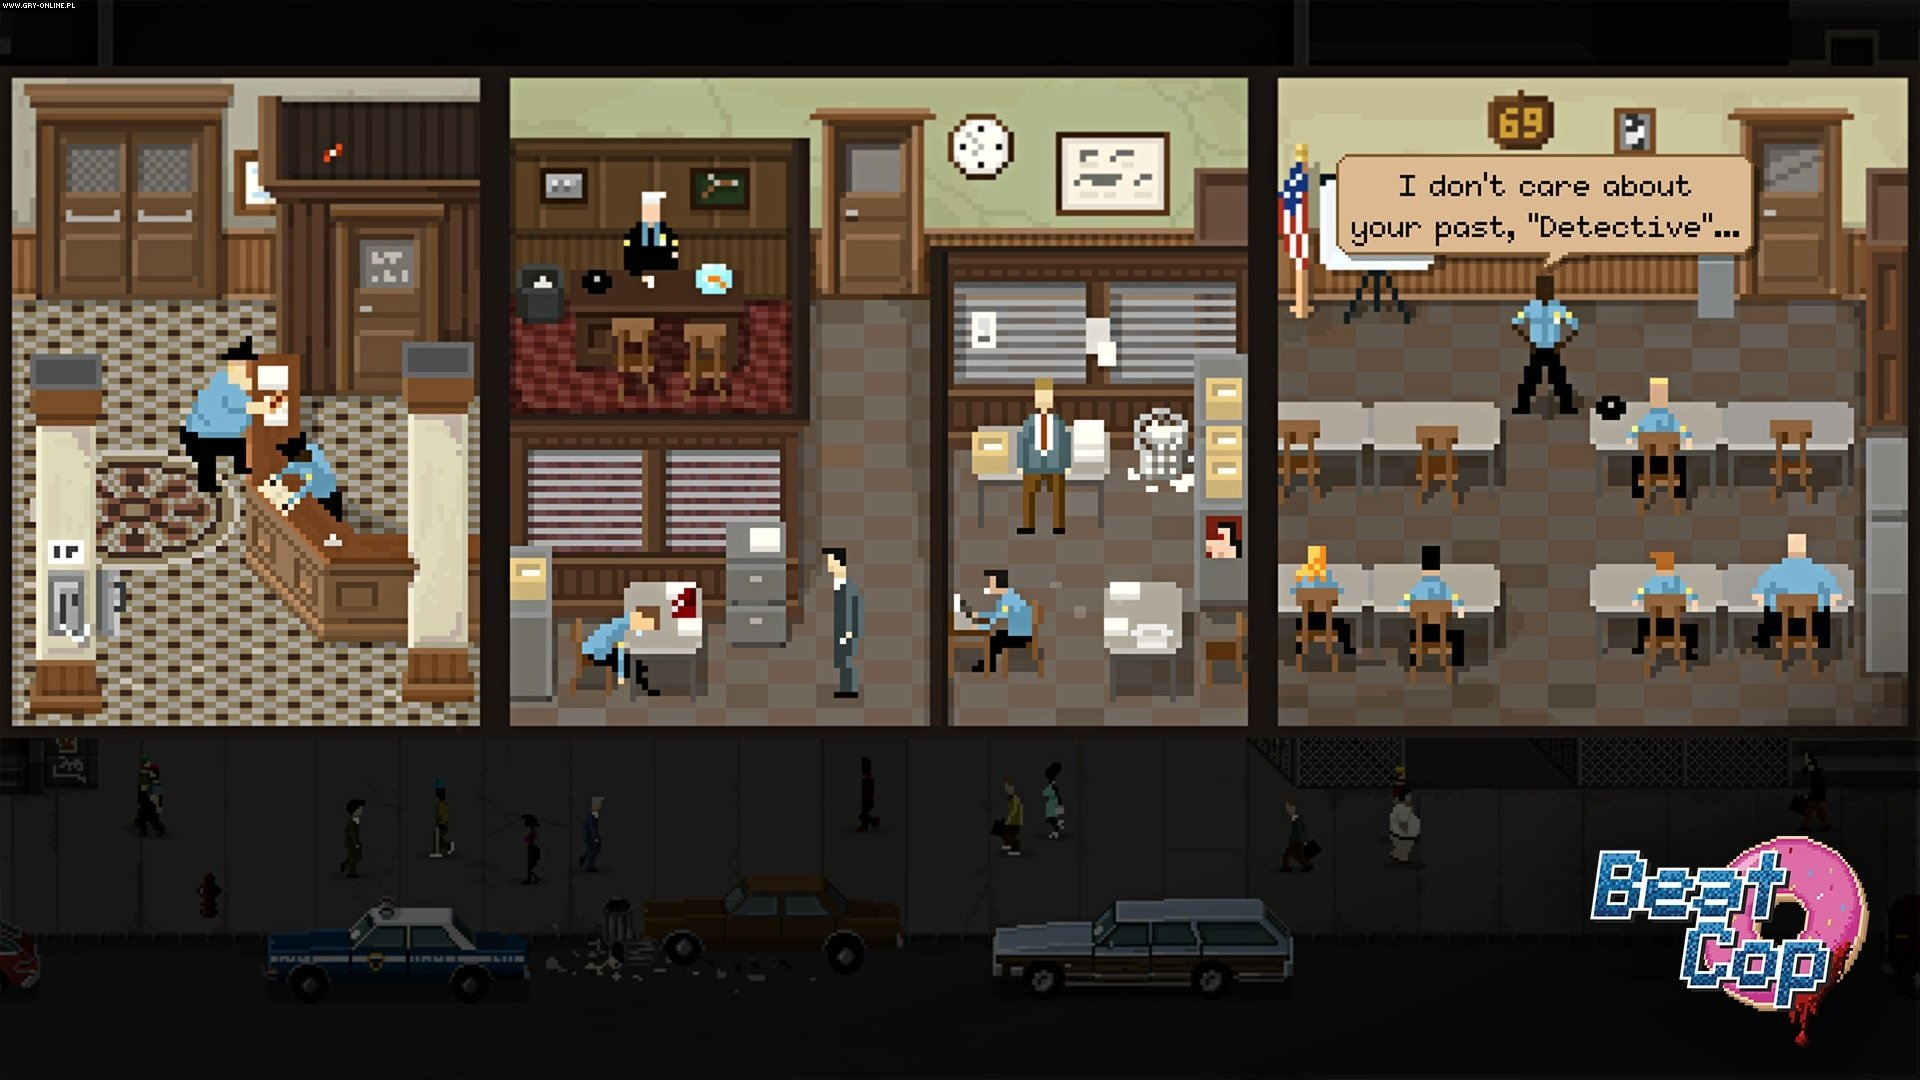 Beat Cop PC Games Image 8/16, Pixel Crow, 11 bit studios